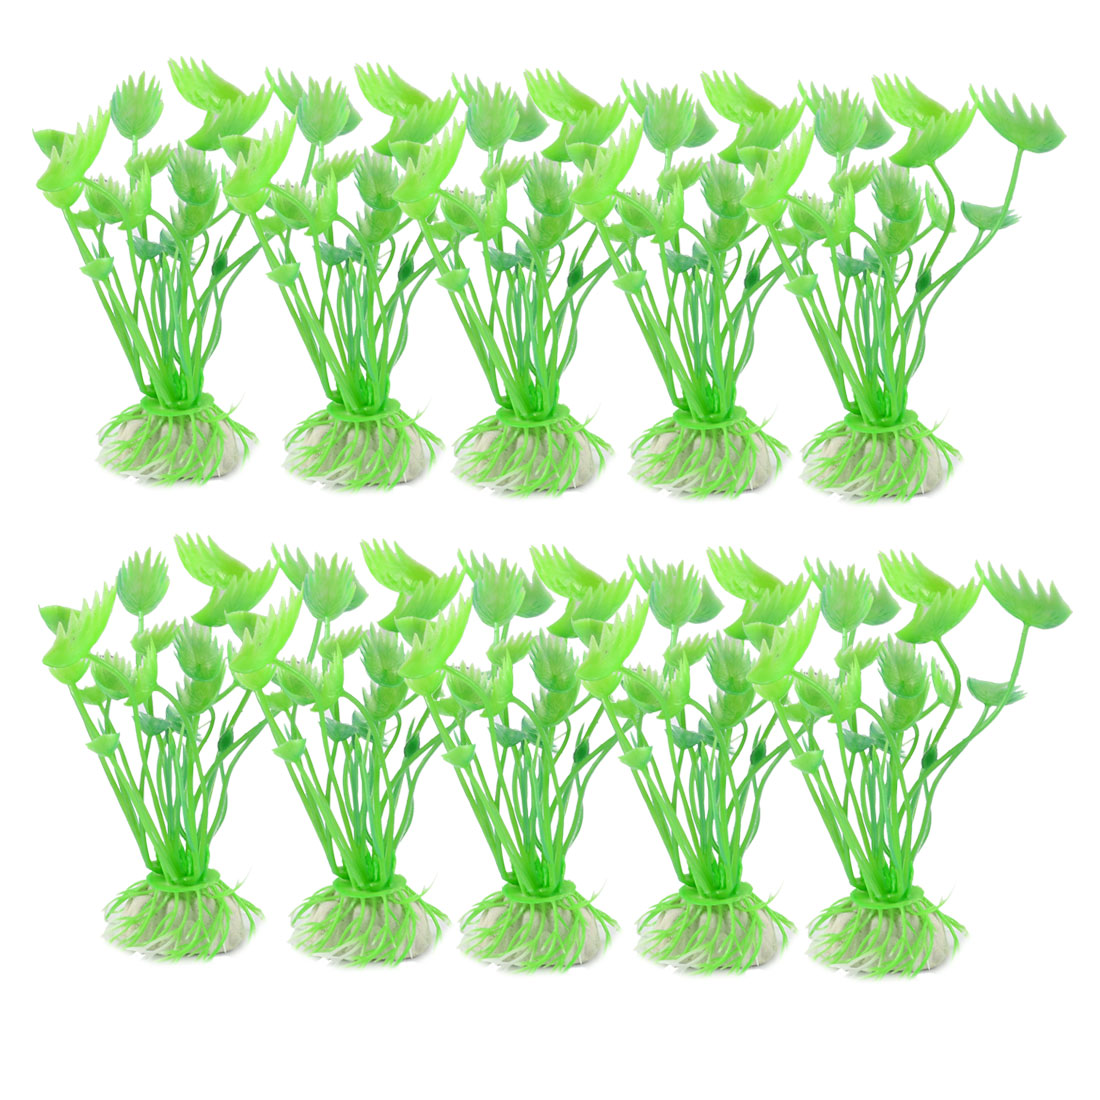 "10 Pcs 3.5"" Height Plastic Aquatic Plants Grass Green for Aquarium Fish Tanks"